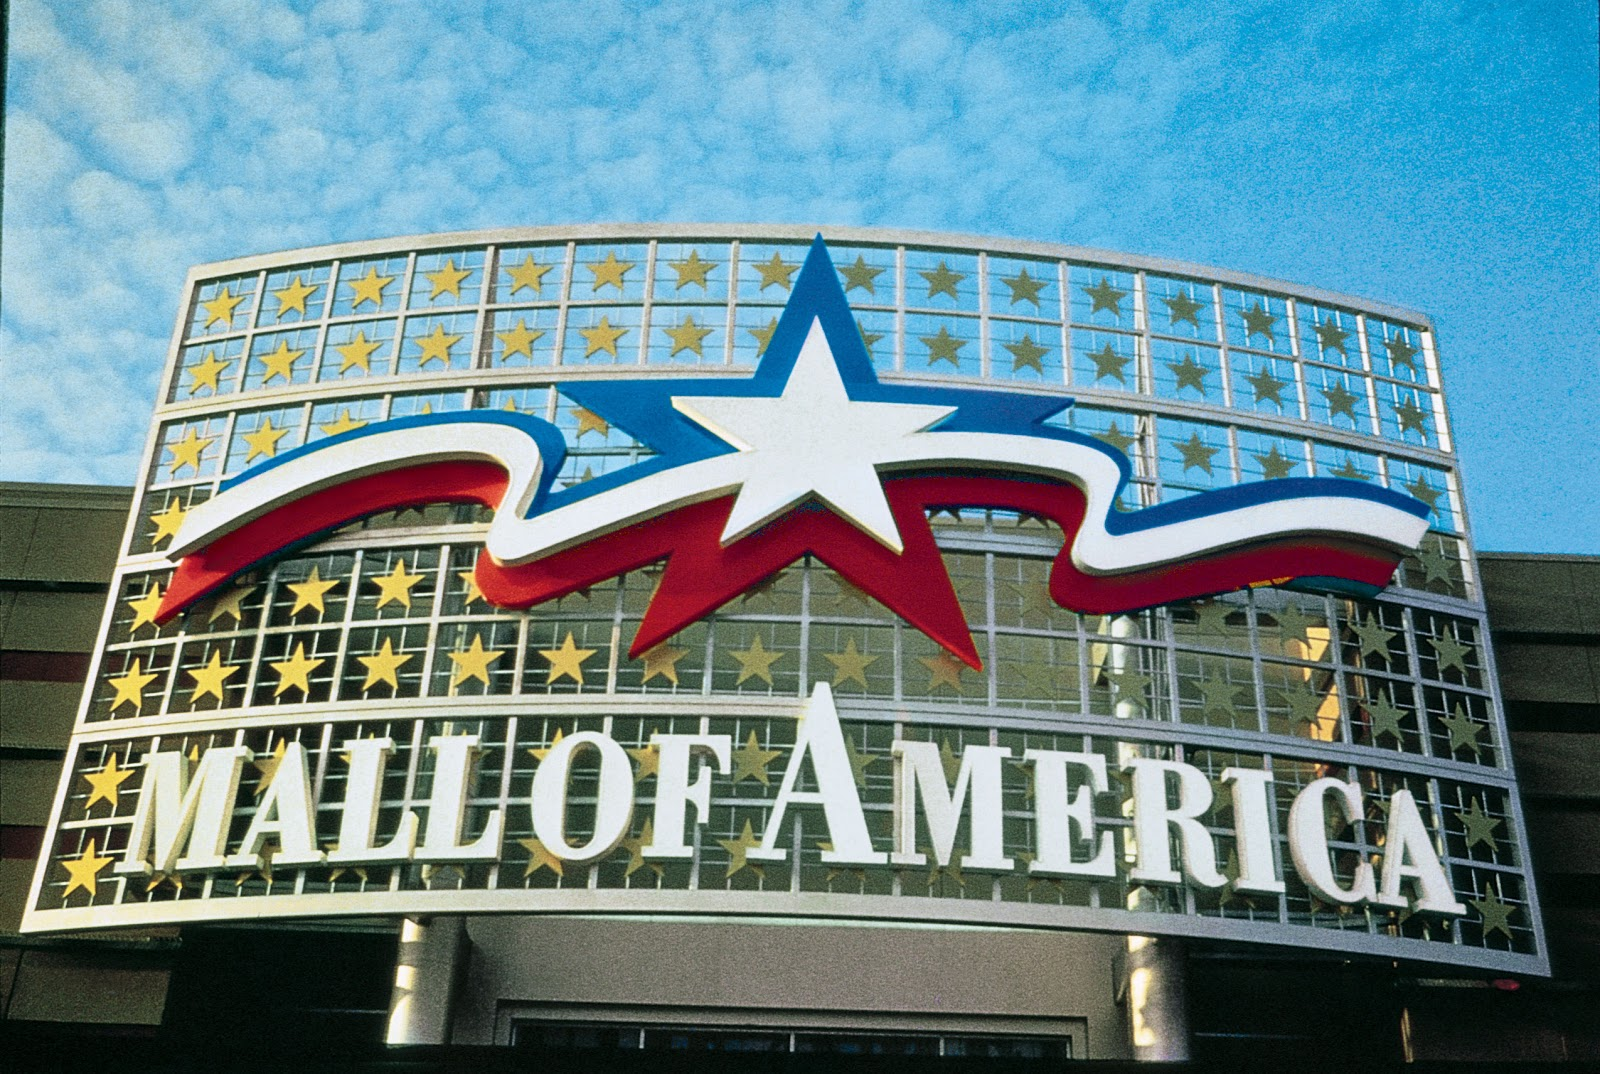 Mall of America Fun Facts